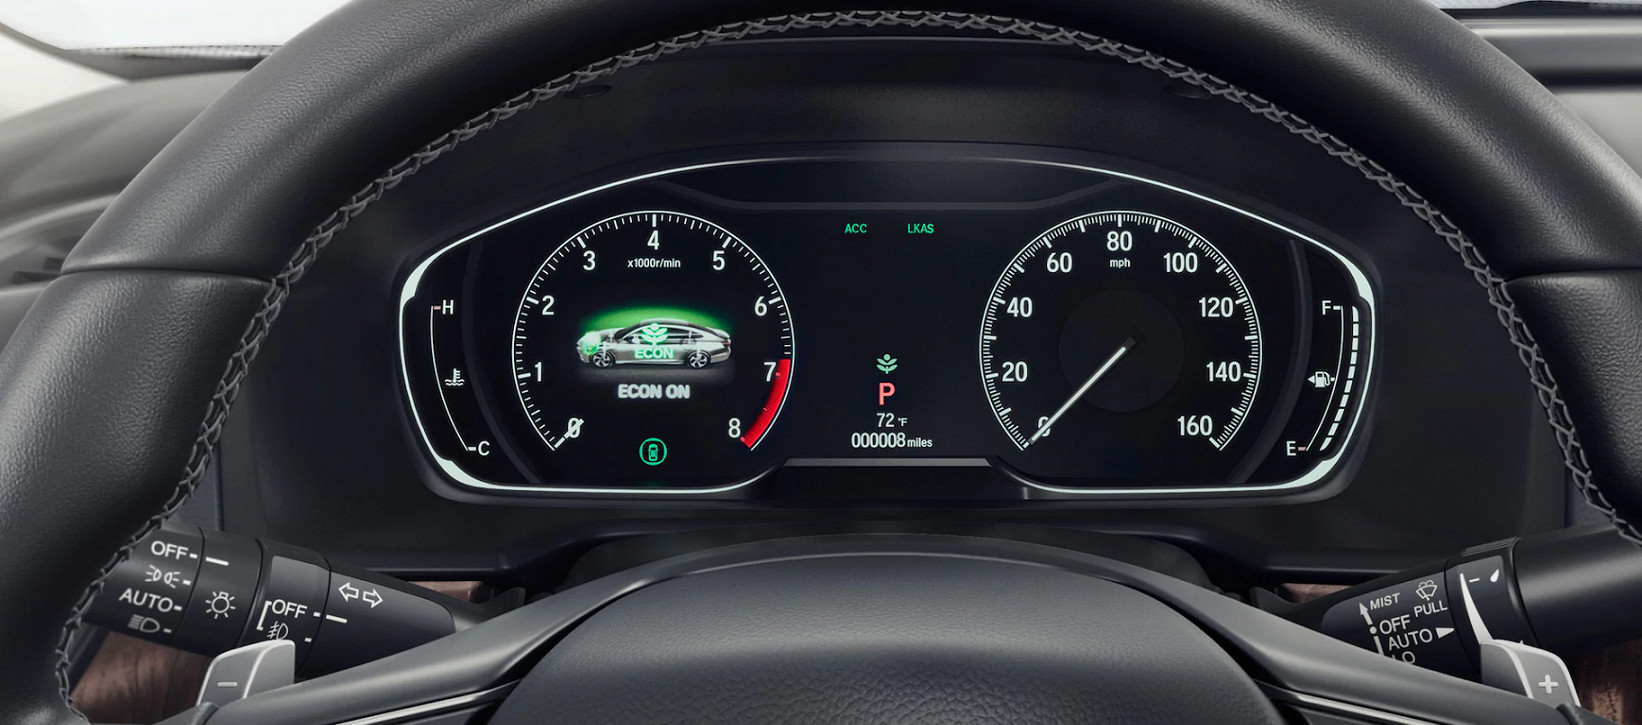 Instrument Panel of the 2020 Accord